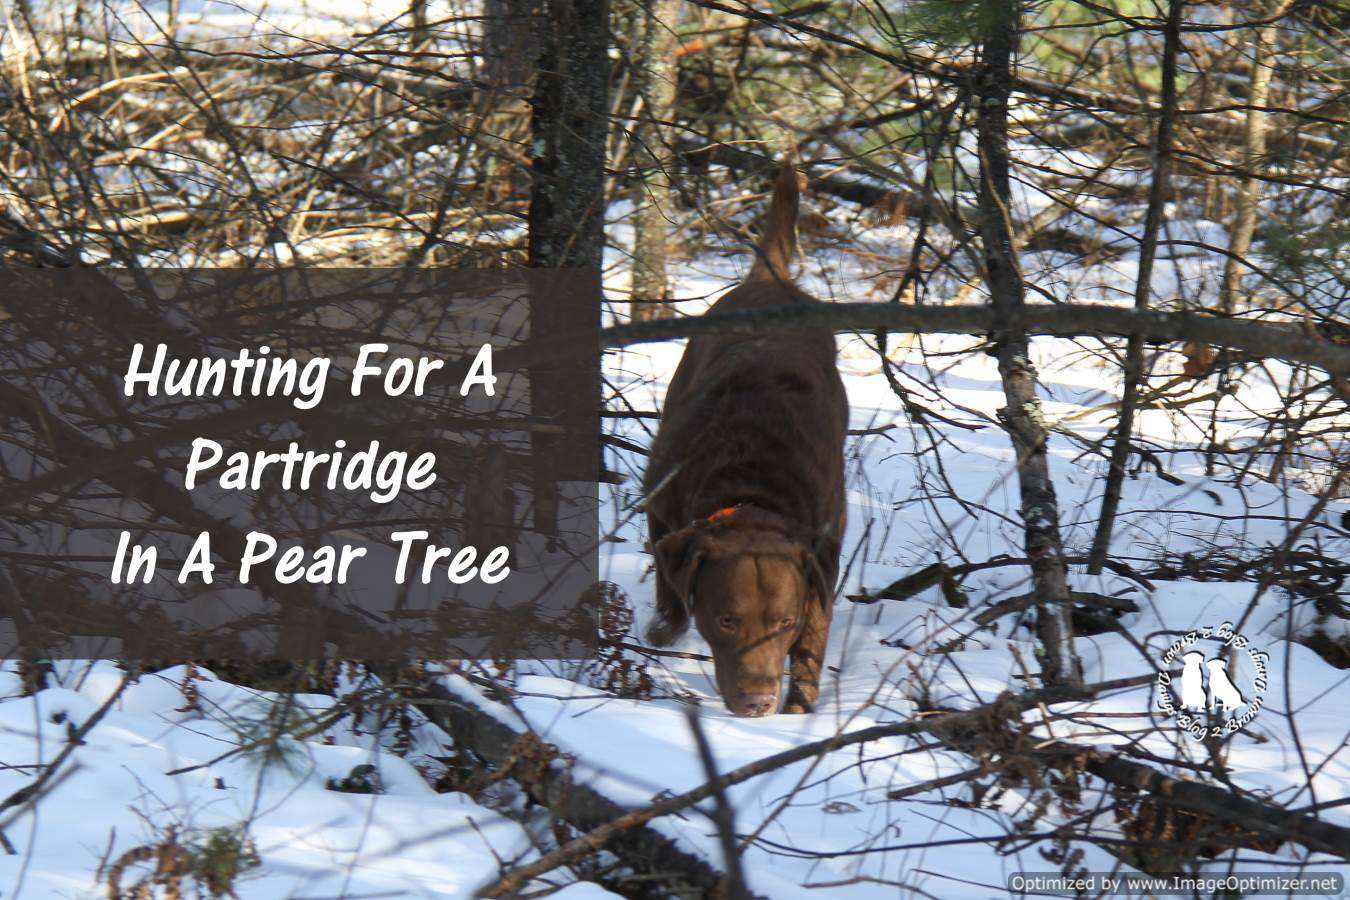 Hunting For A Partridge In A Pear Tree